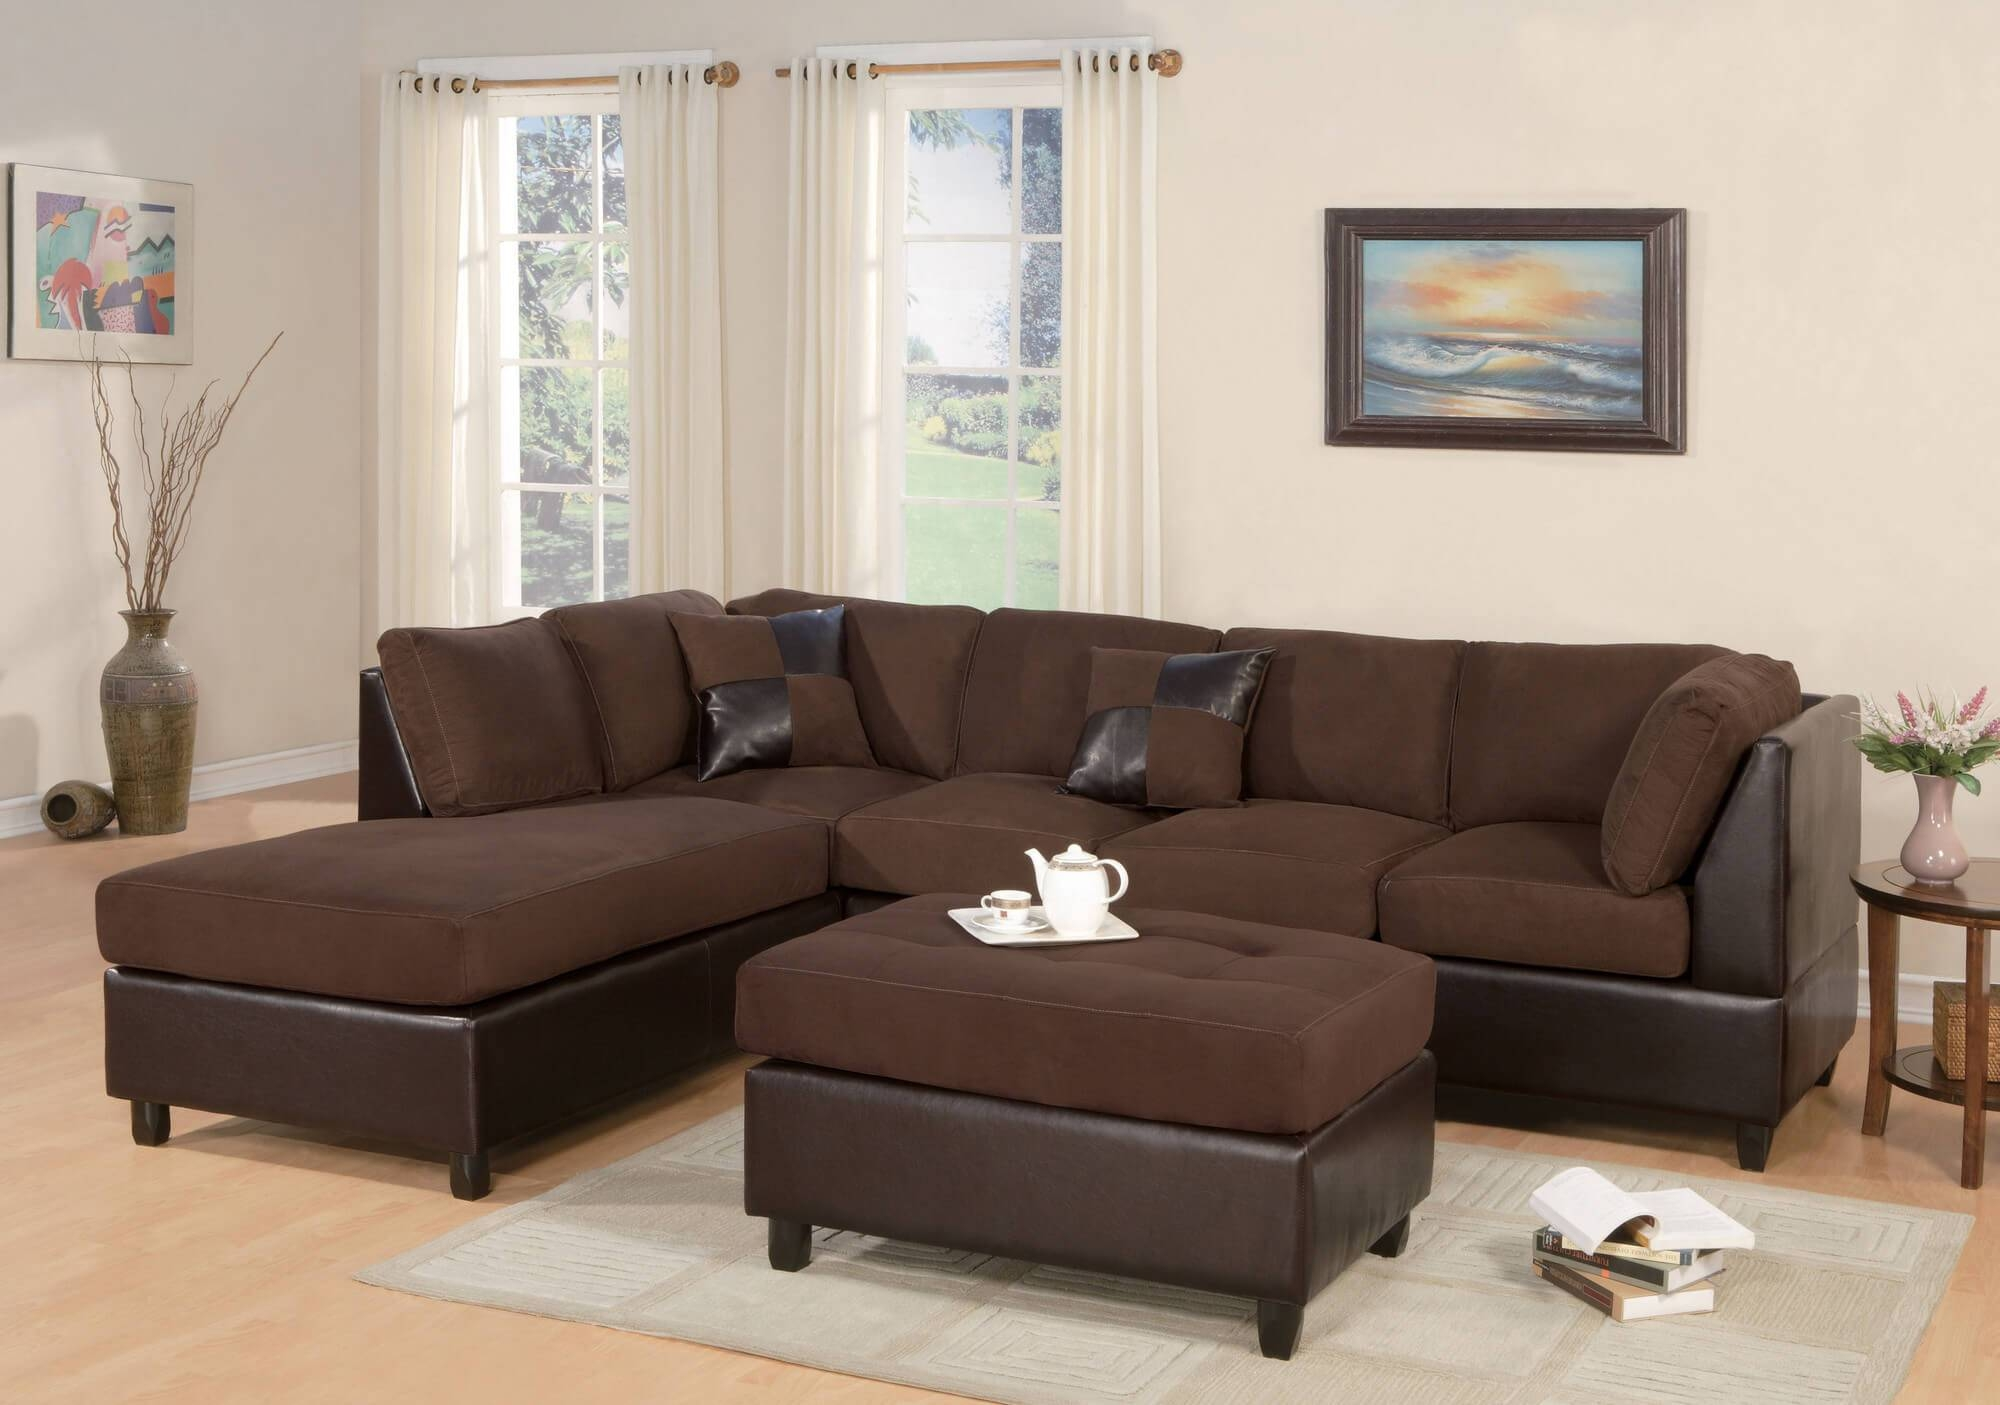 2017 Latest Small 2 Piece Sectional Sofas